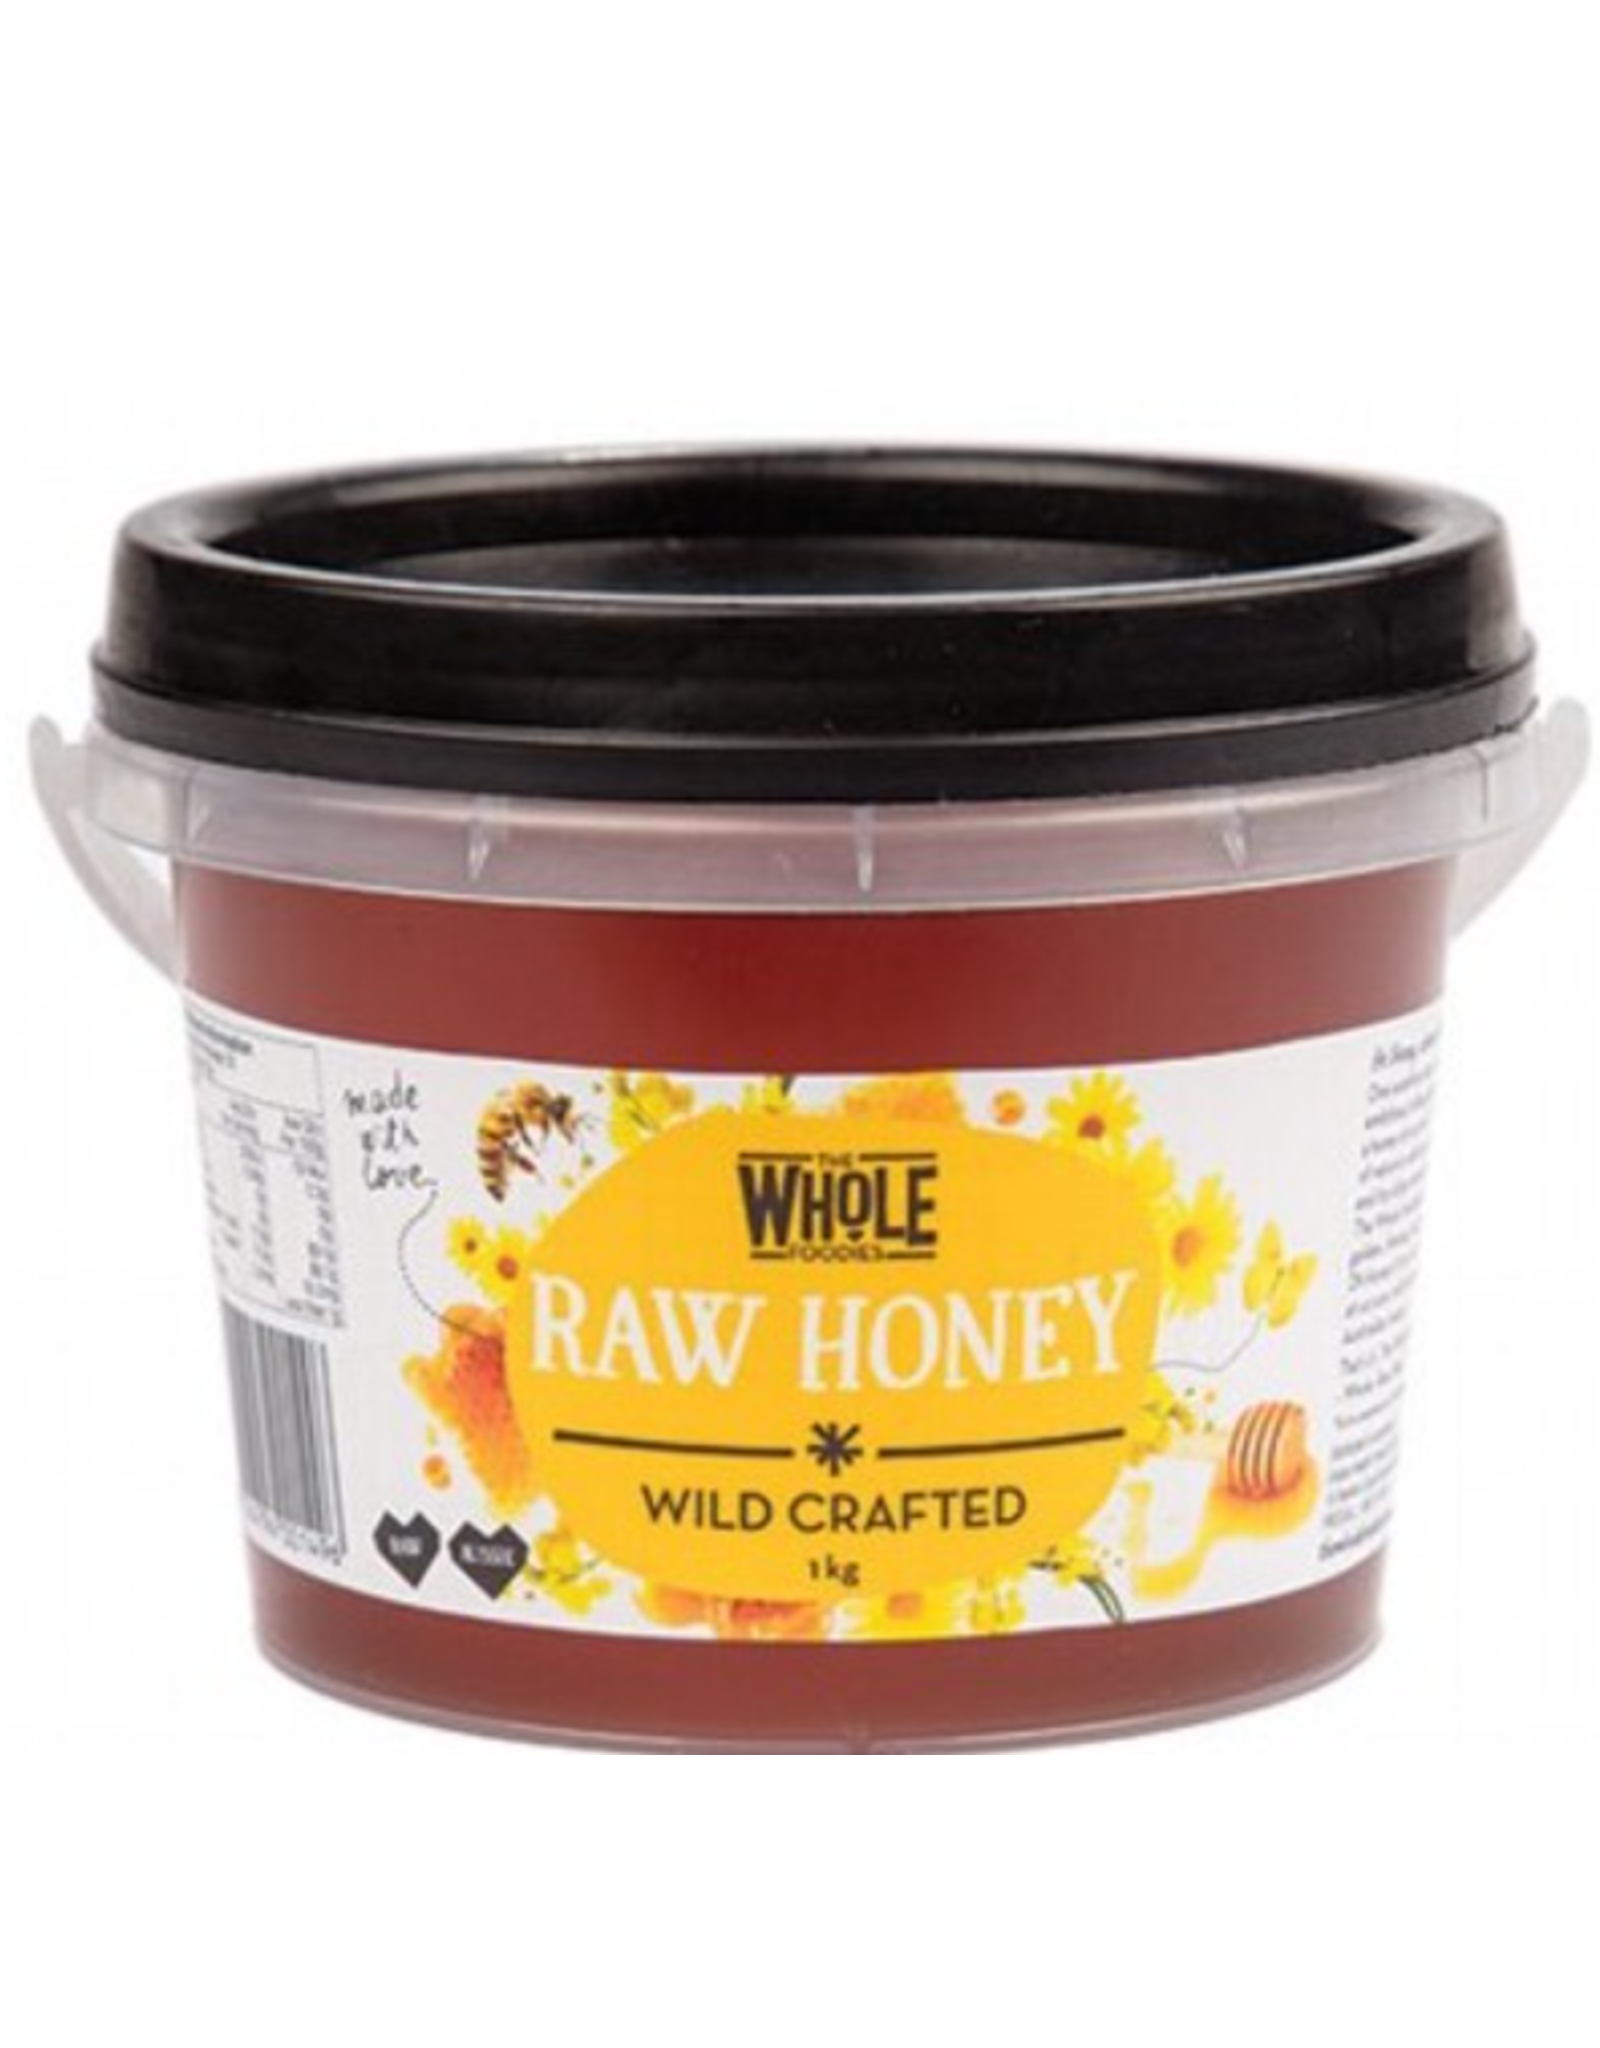 The Whole Foodies Honey (Wild Crafted) Tub - 1kg